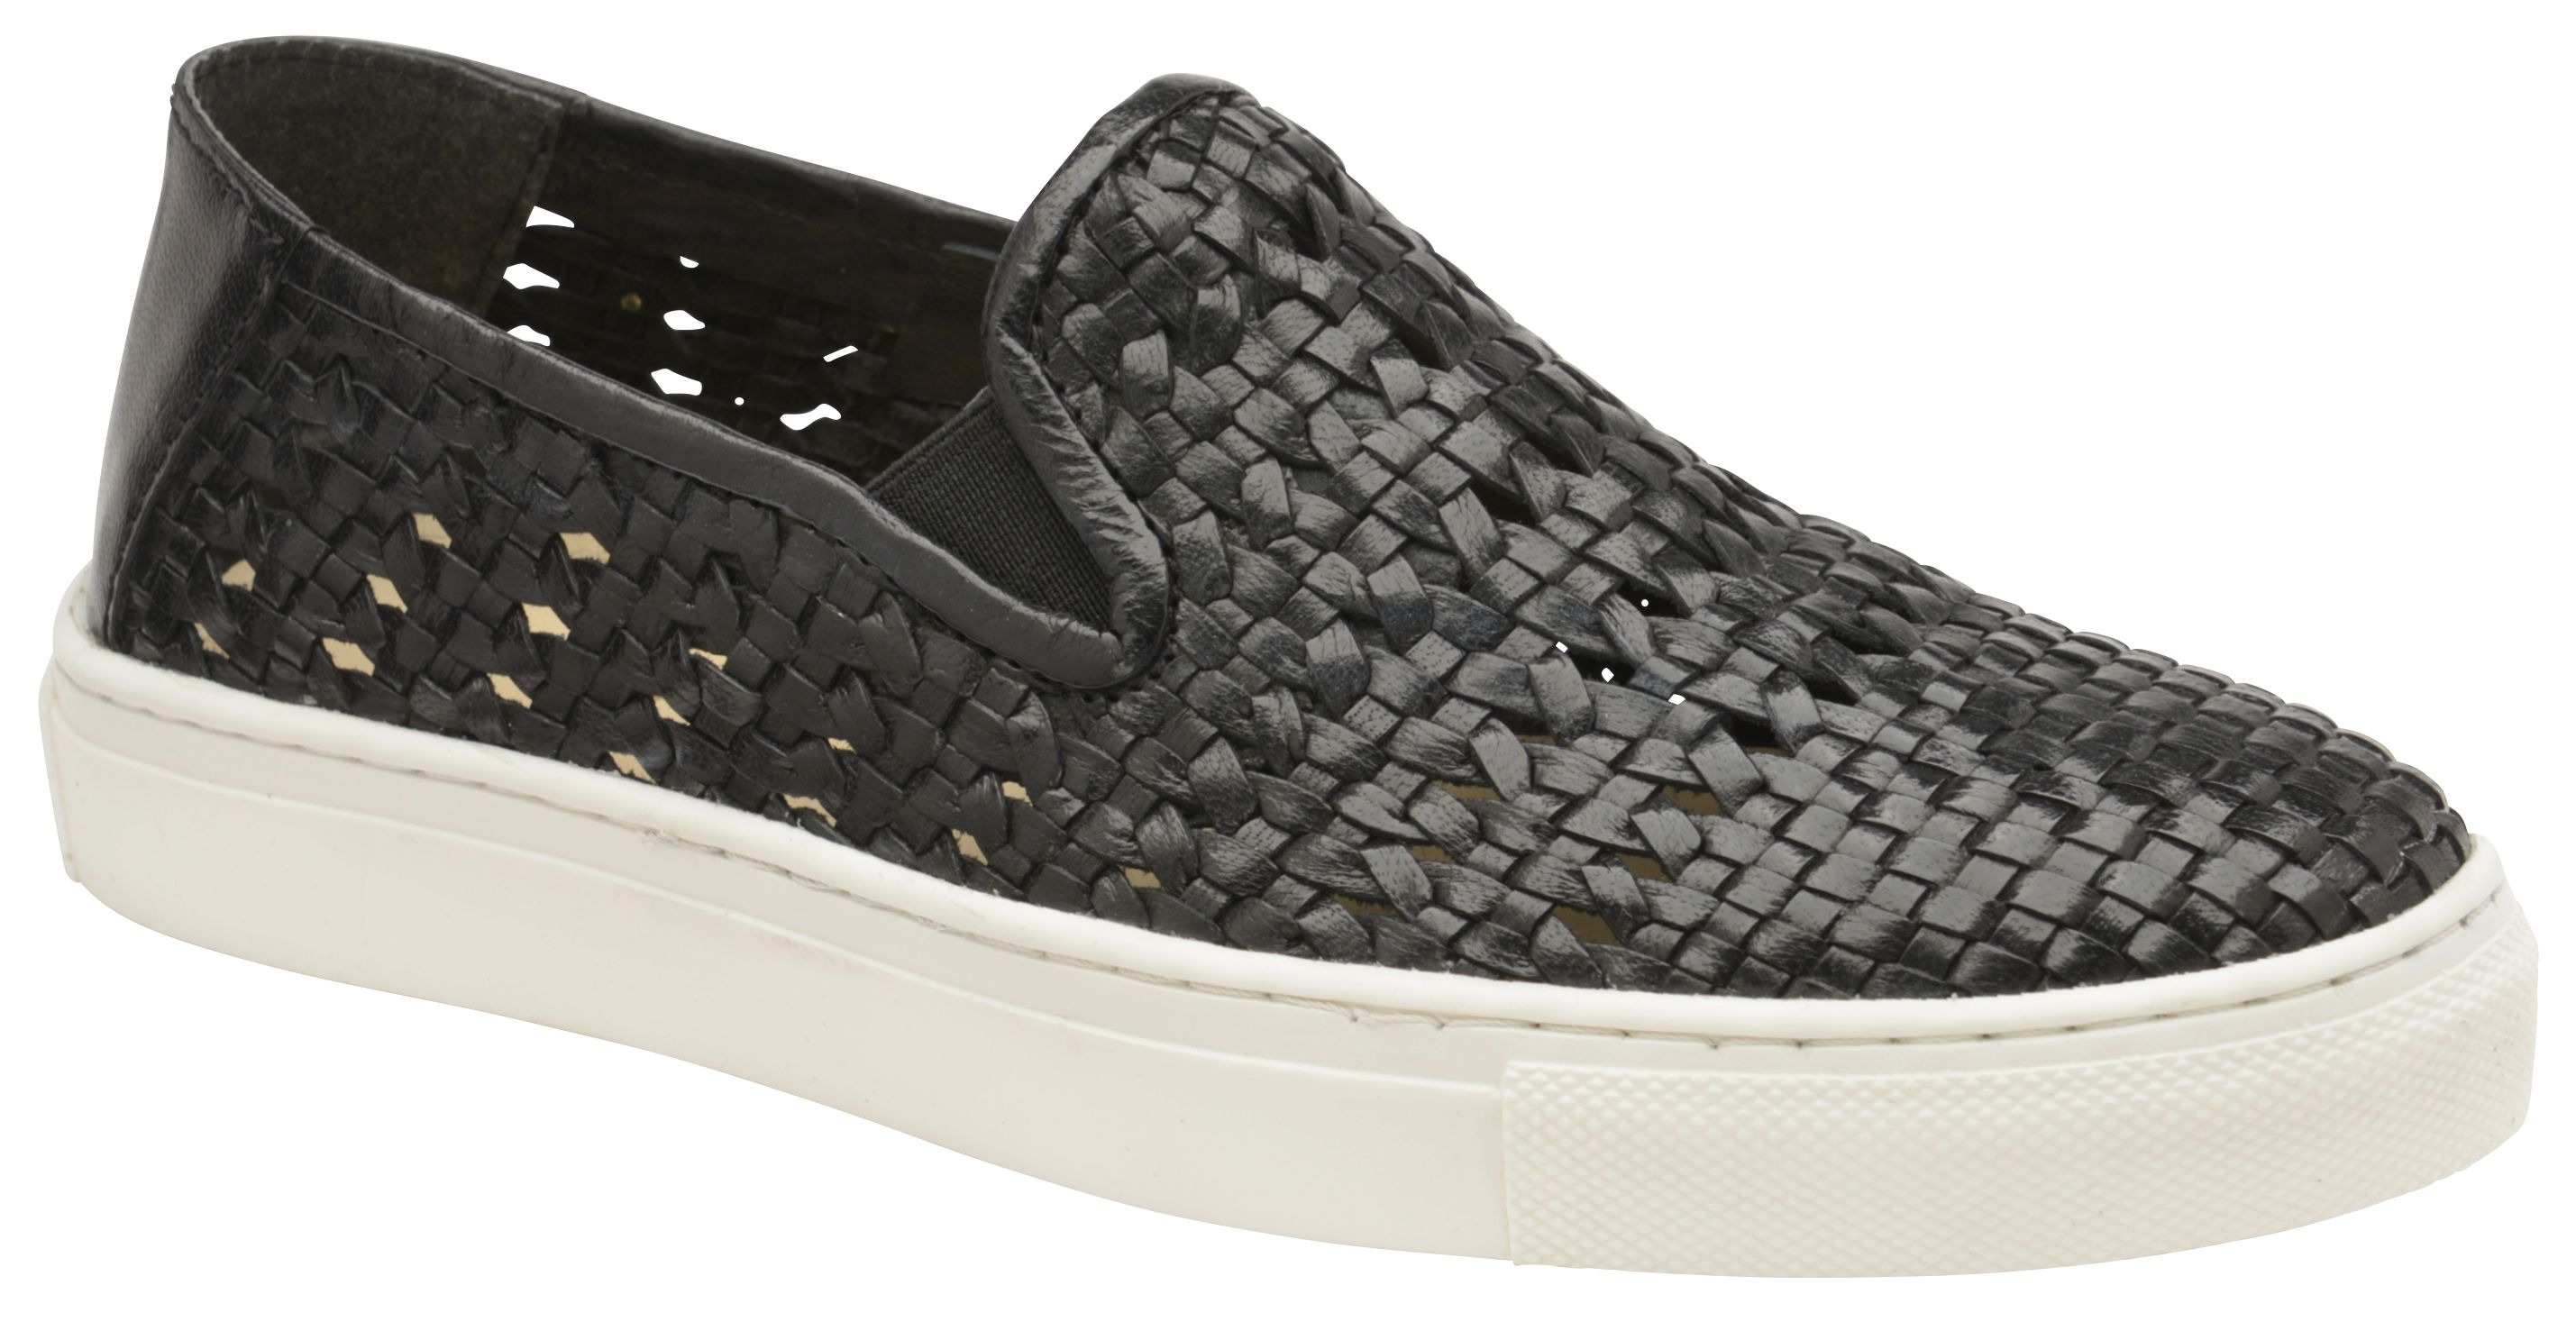 Ravel Ferndale Casual Shoes, Black Leather